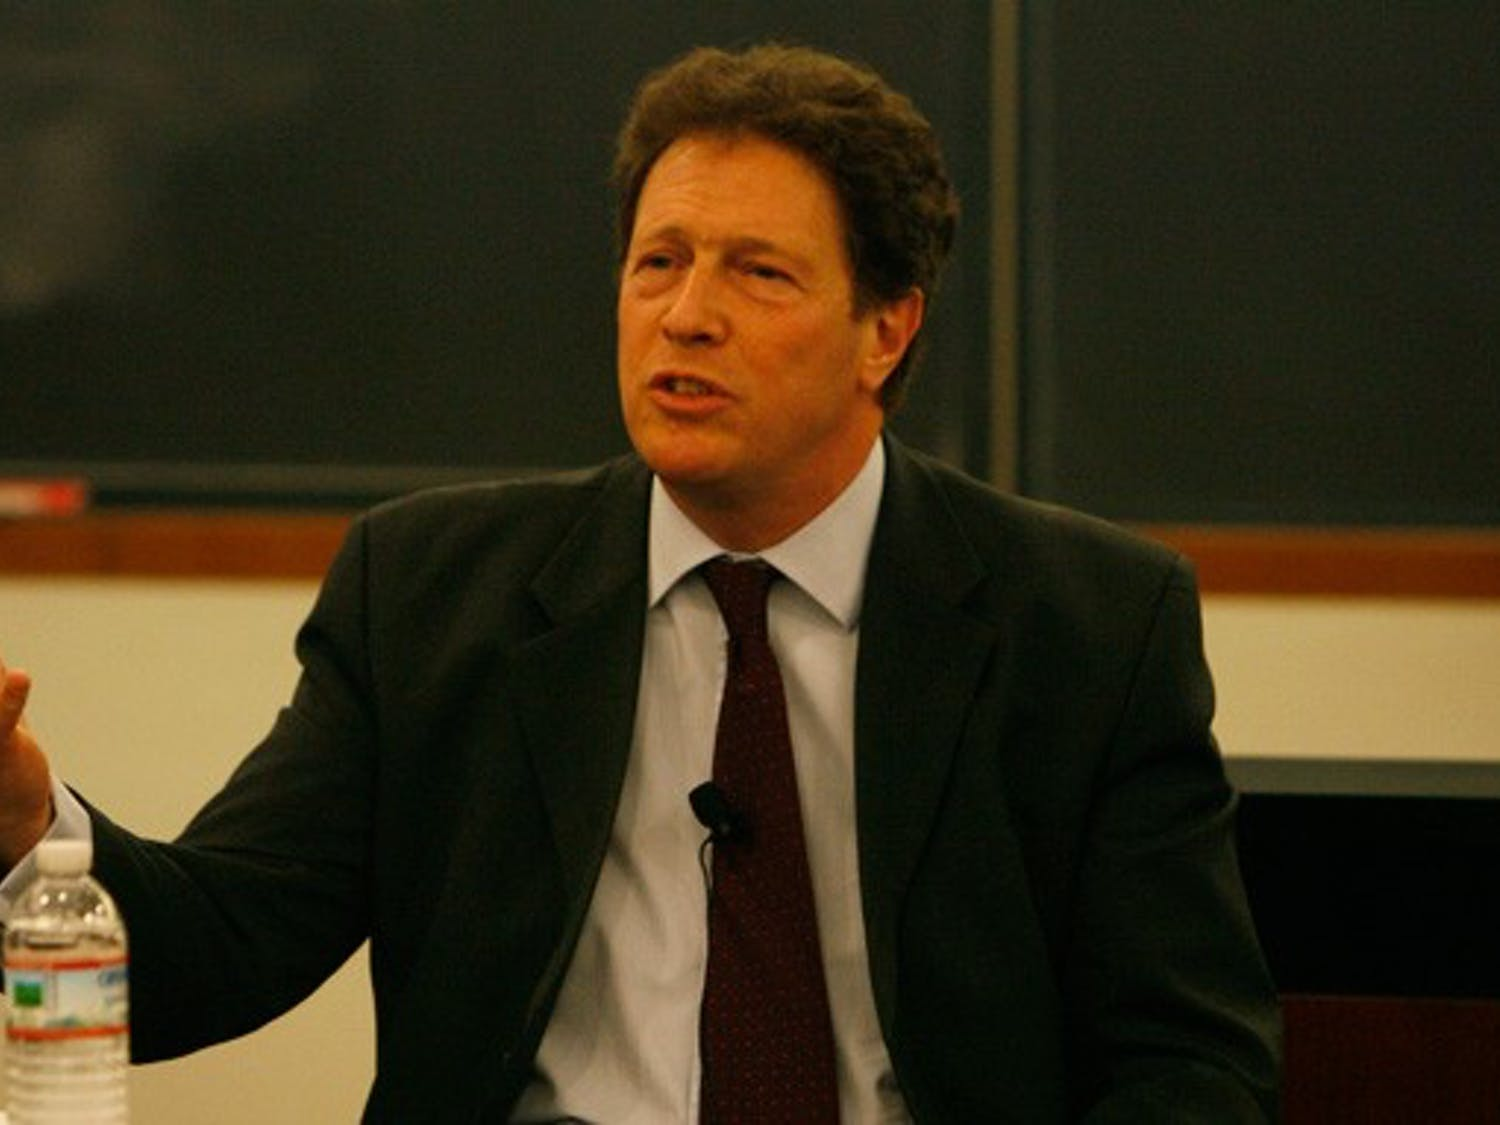 Speaking in the Sanford School of Public Policy Tuesday evening, Sir Nigel Sheinwald, British ambassador to the United States, discussed Great Britain's foreign policy in the Middle East with students and faculty.